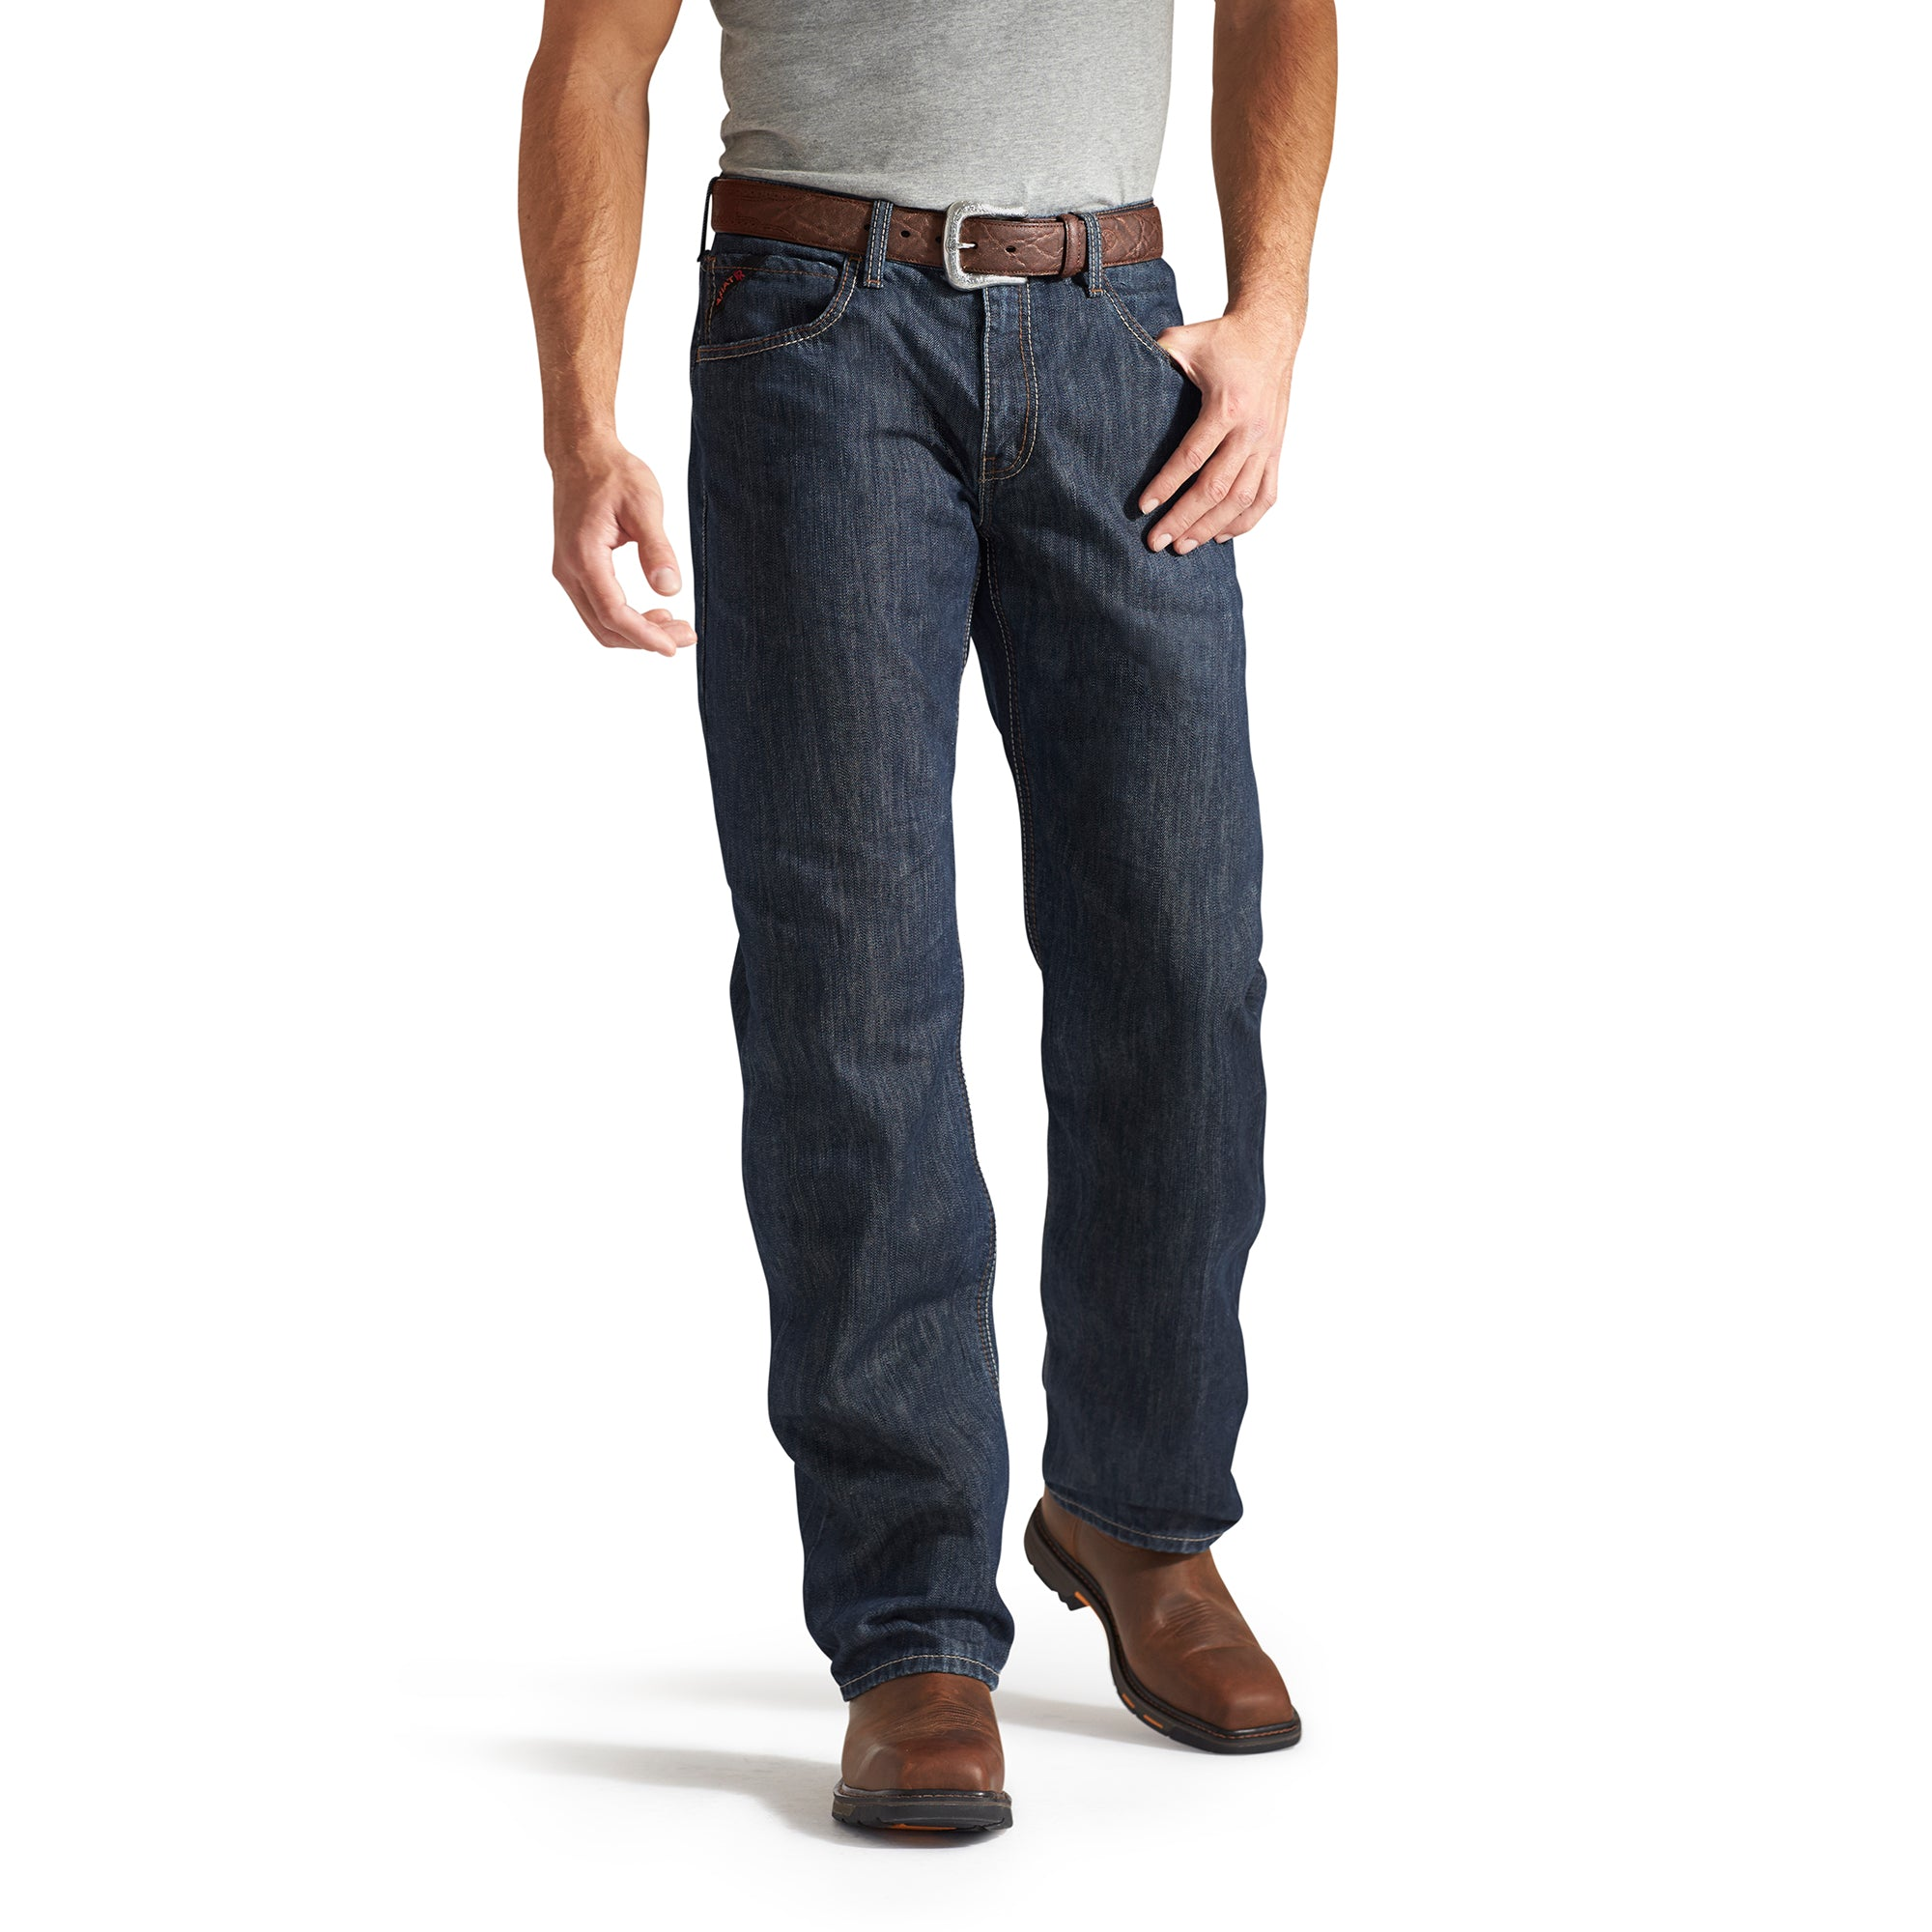 M3 Shale FR Loose Fit Jeans - Medium Wash Denim